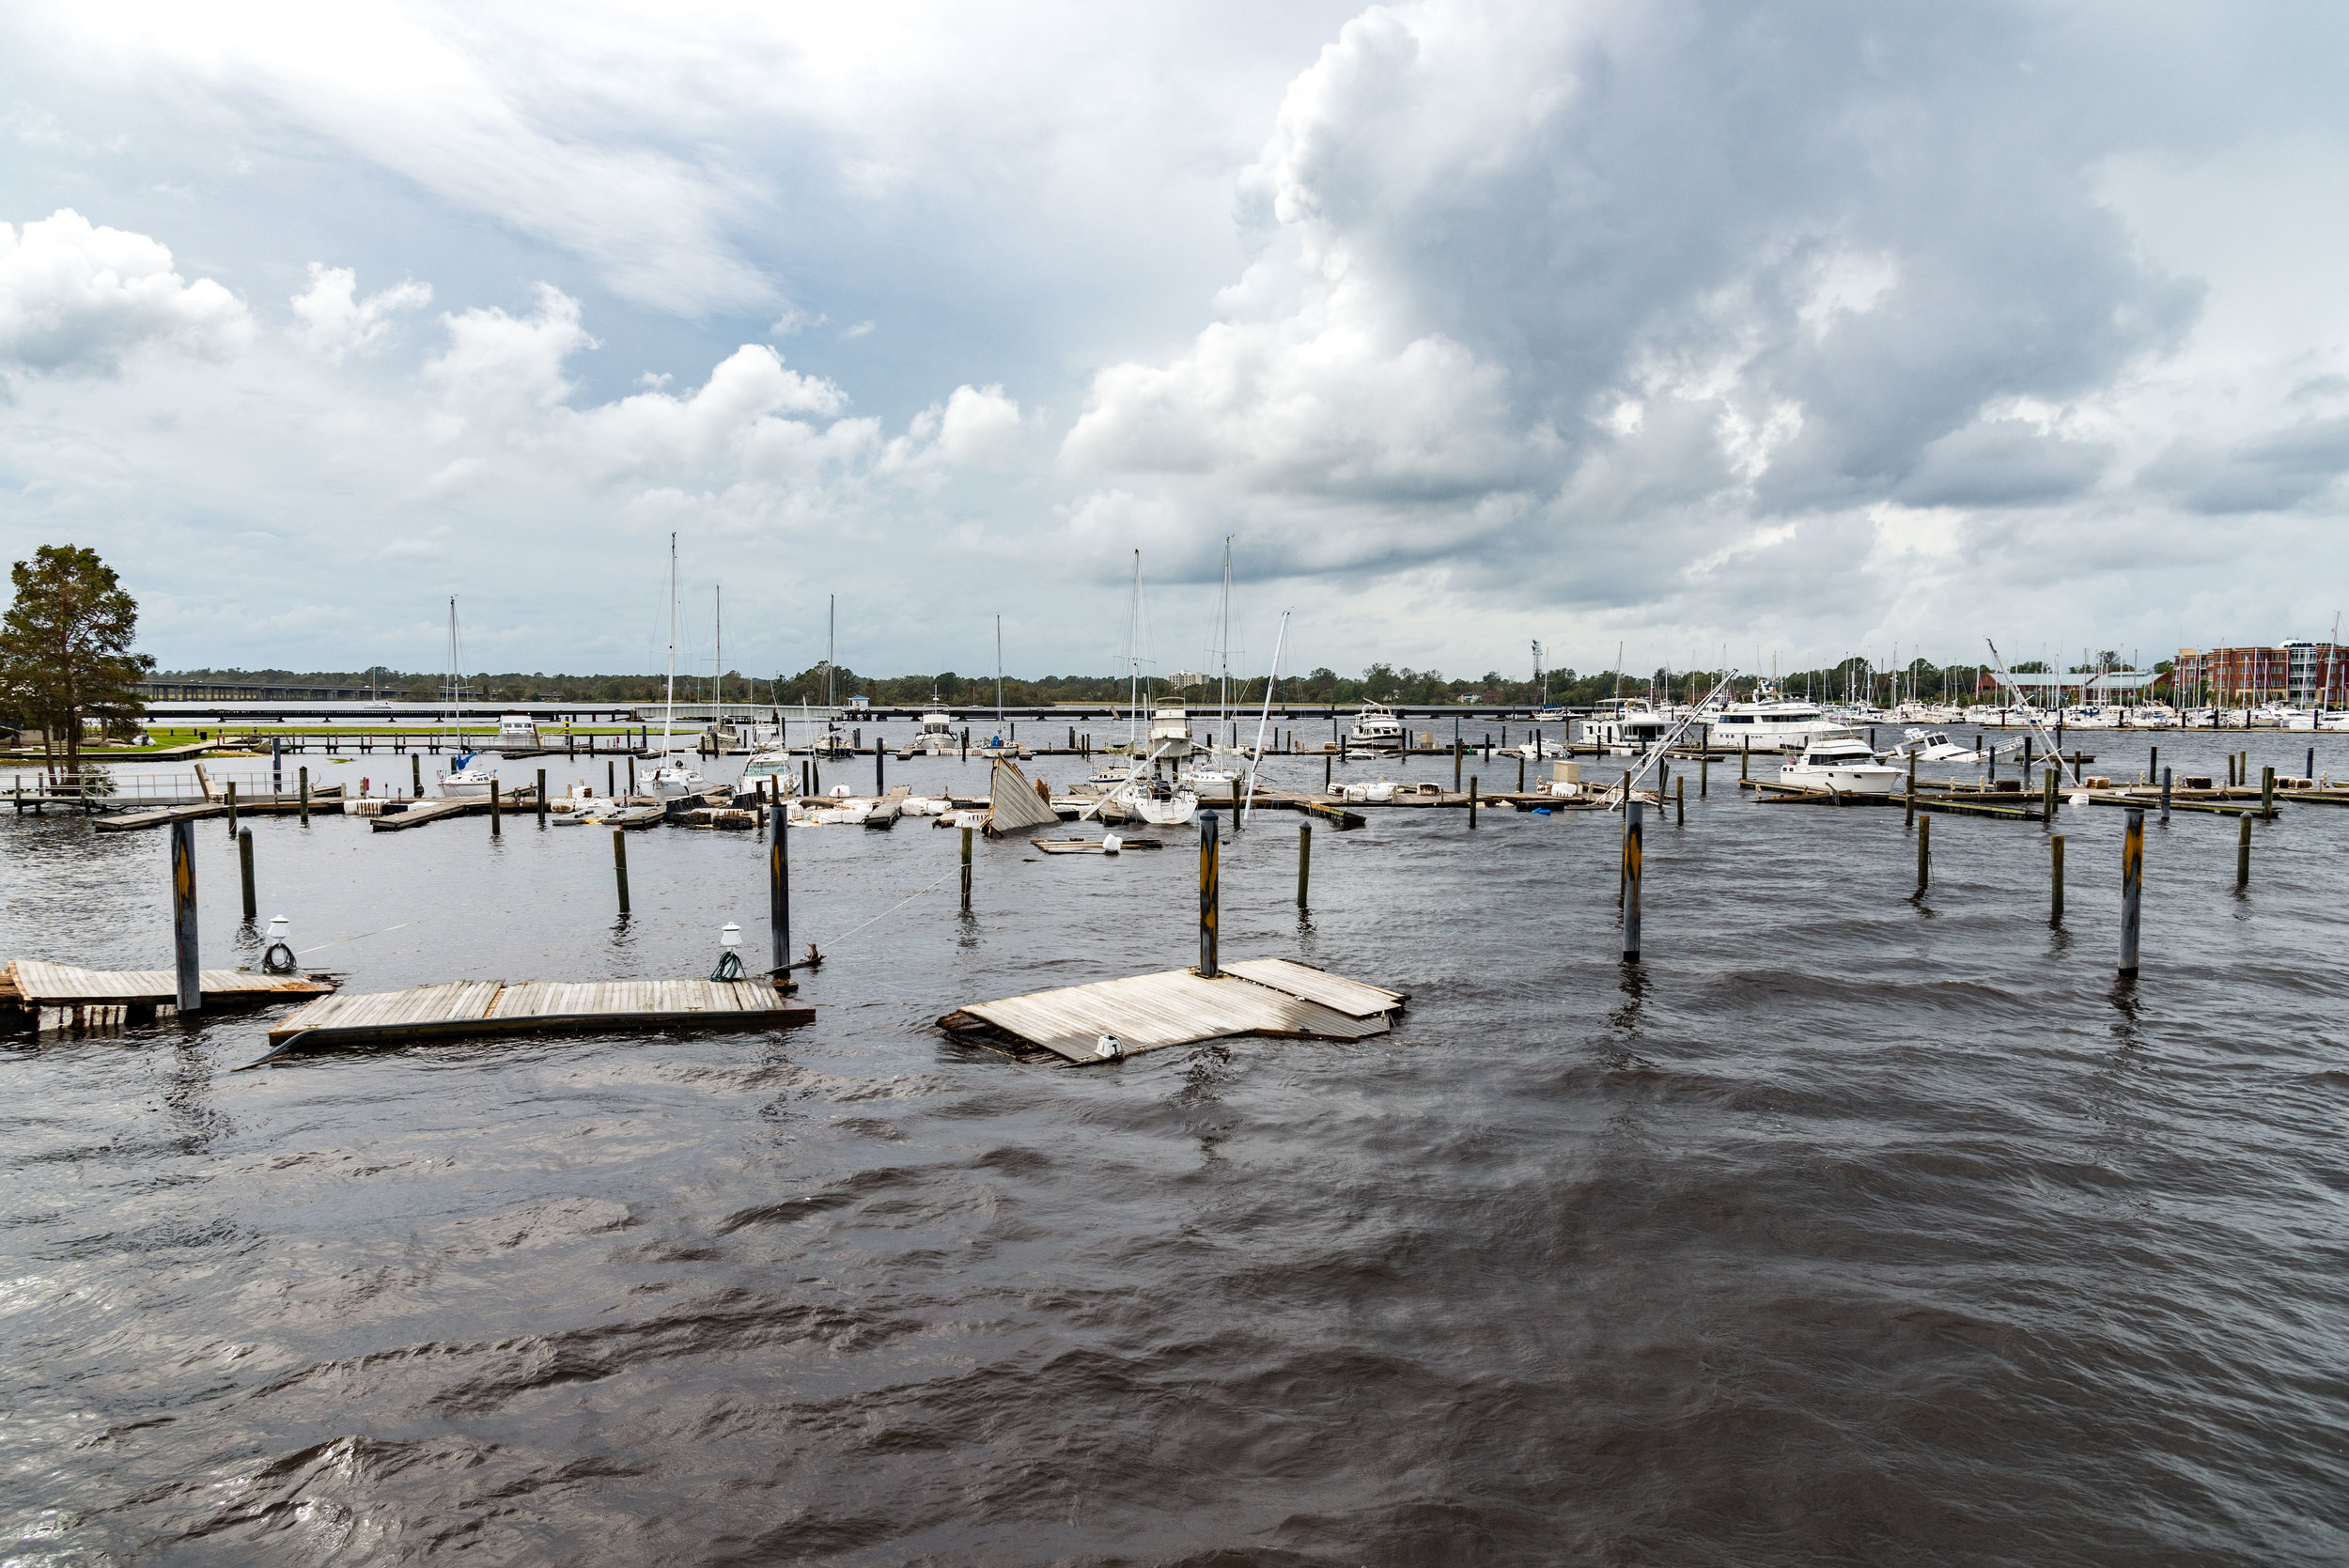 September 16, 2018, New Bern, NC-  Boats found sunk at Bridgepointe Marina in the wake of Hurricane Florence.